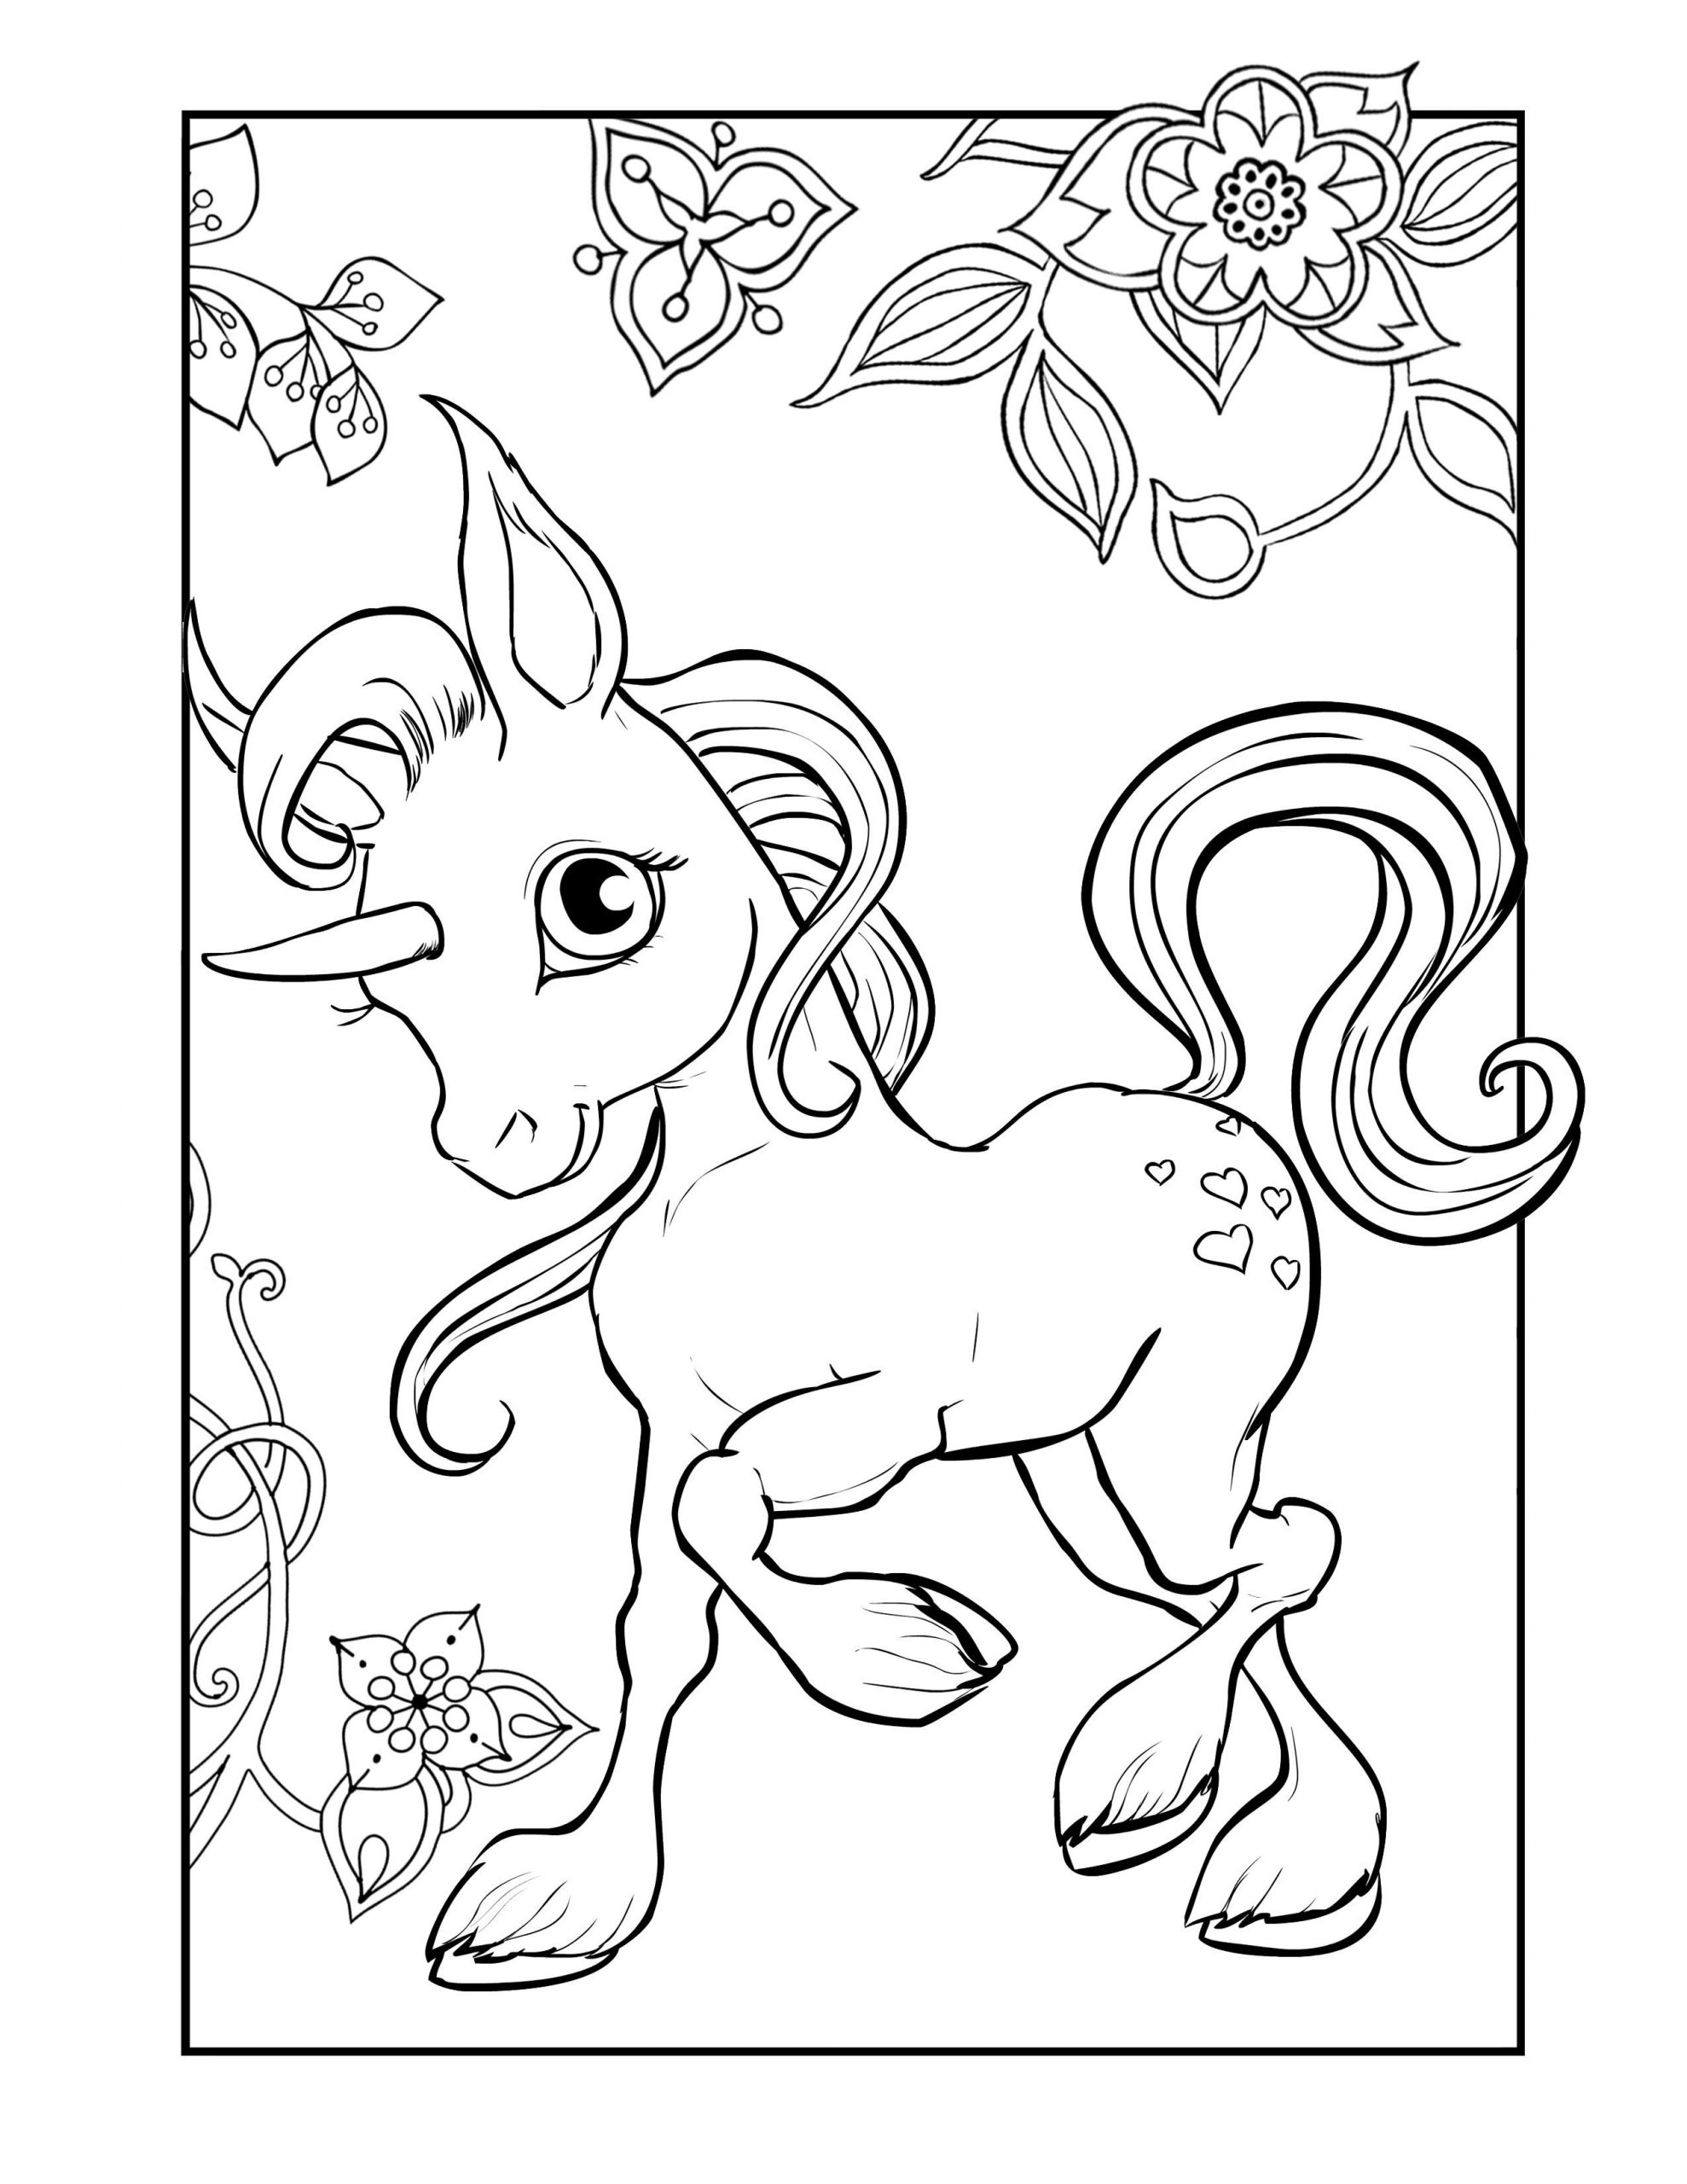 coloring page of unicorn unicorn coloring pages free download on clipartmag unicorn of coloring page